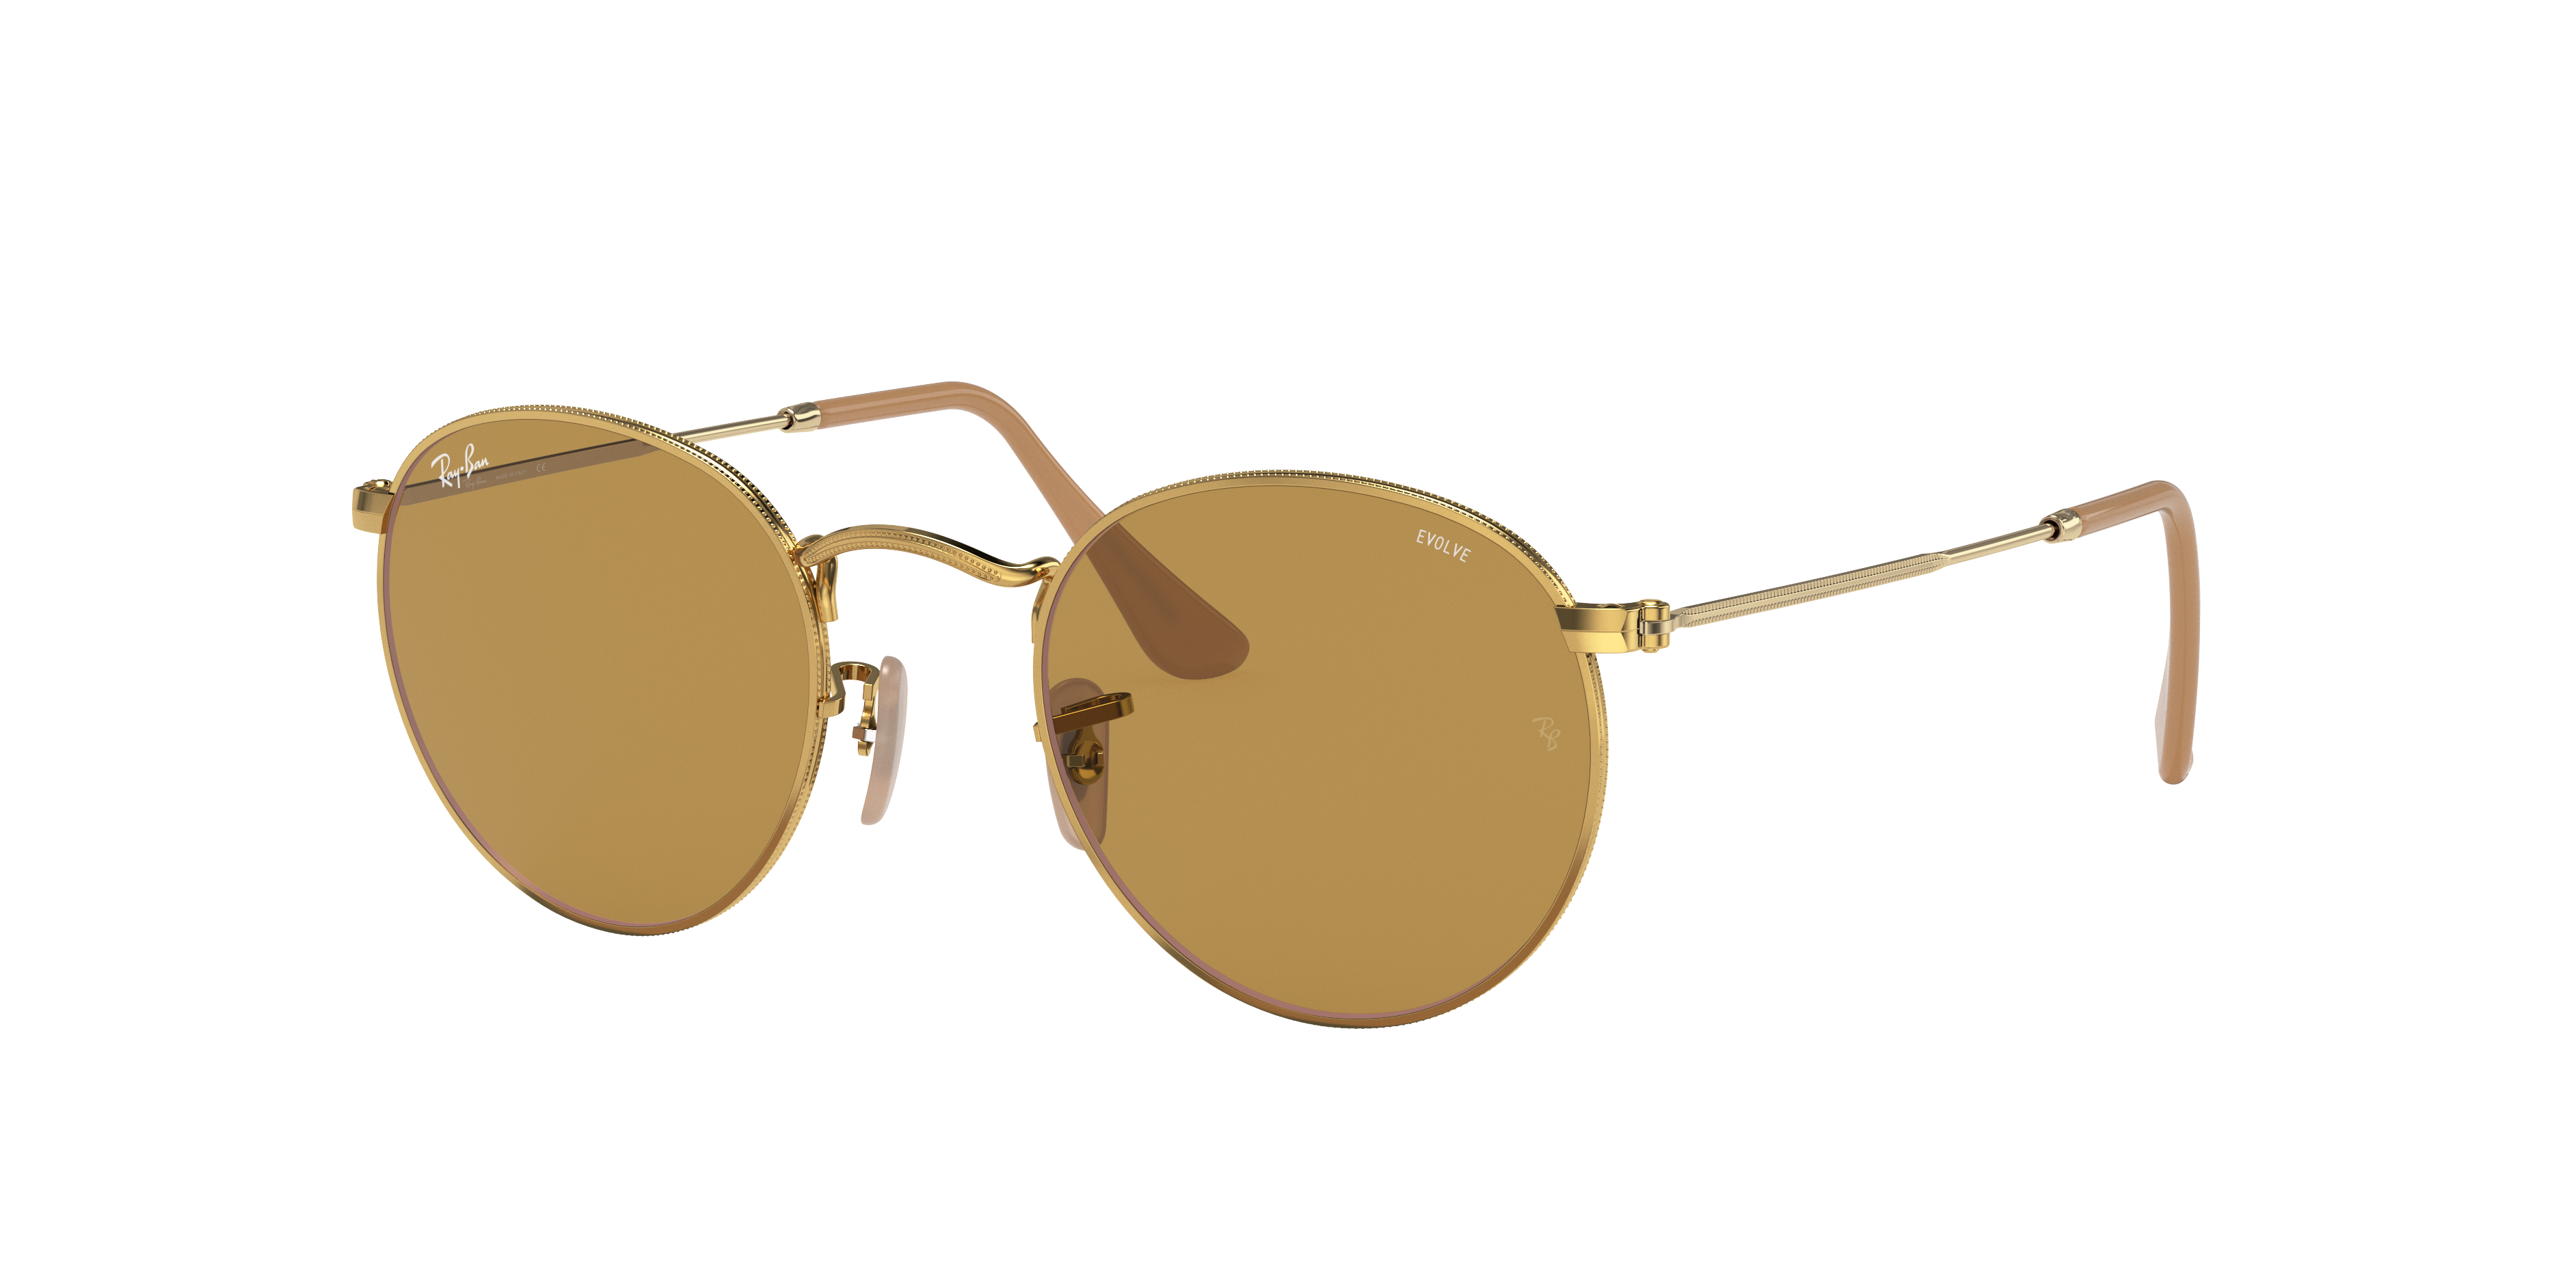 Ray-Ban Round Washed Evolve Gold, Brown Lenses - RB3447